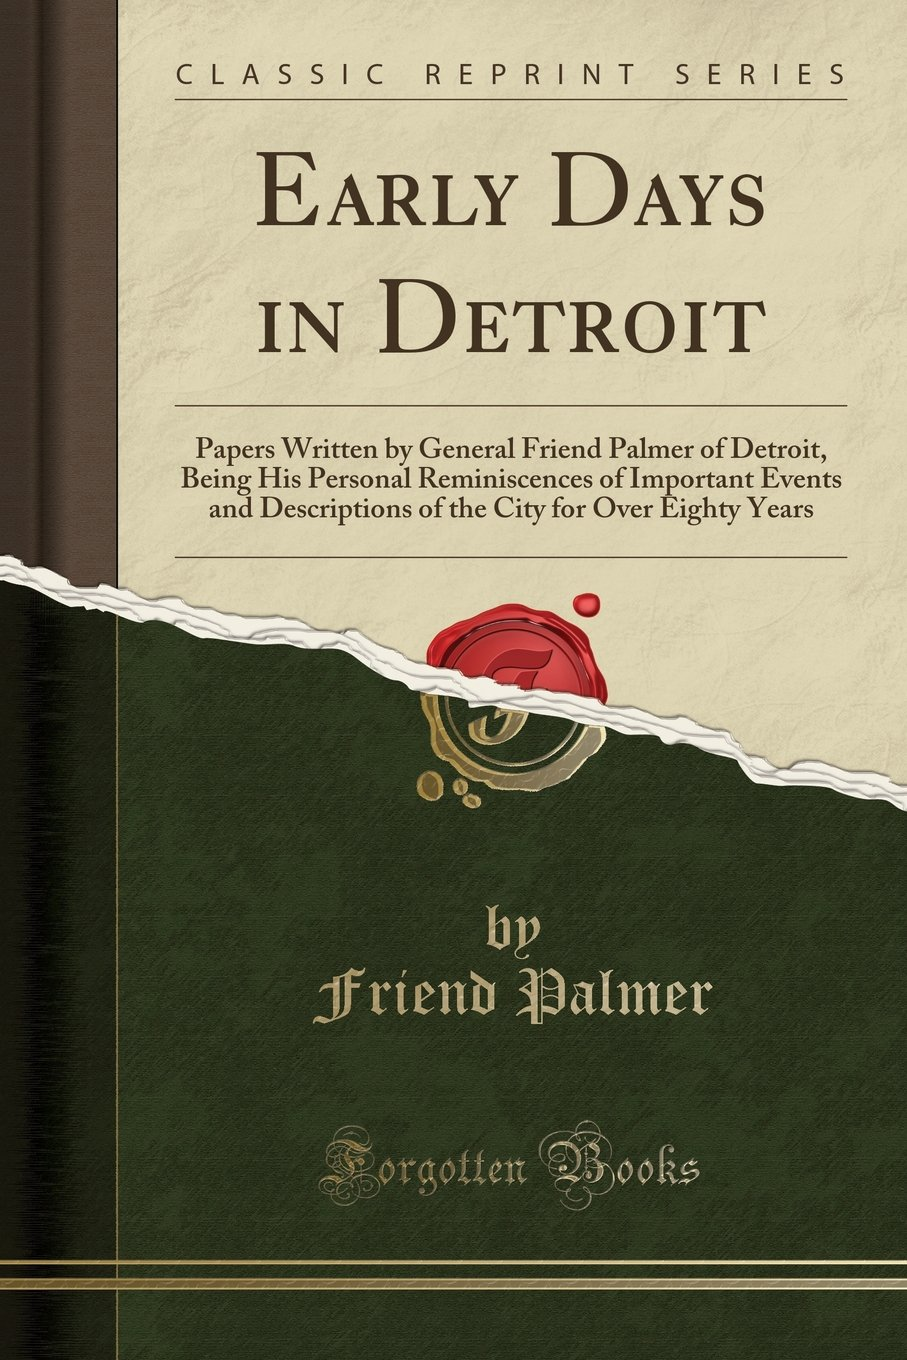 Early Days in Detroit: Papers Written by General Friend Palmer of Detroit, Being His Personal Reminiscences of Important Events and Descriptions of the City for Over Eighty Years (Classic Reprint) pdf